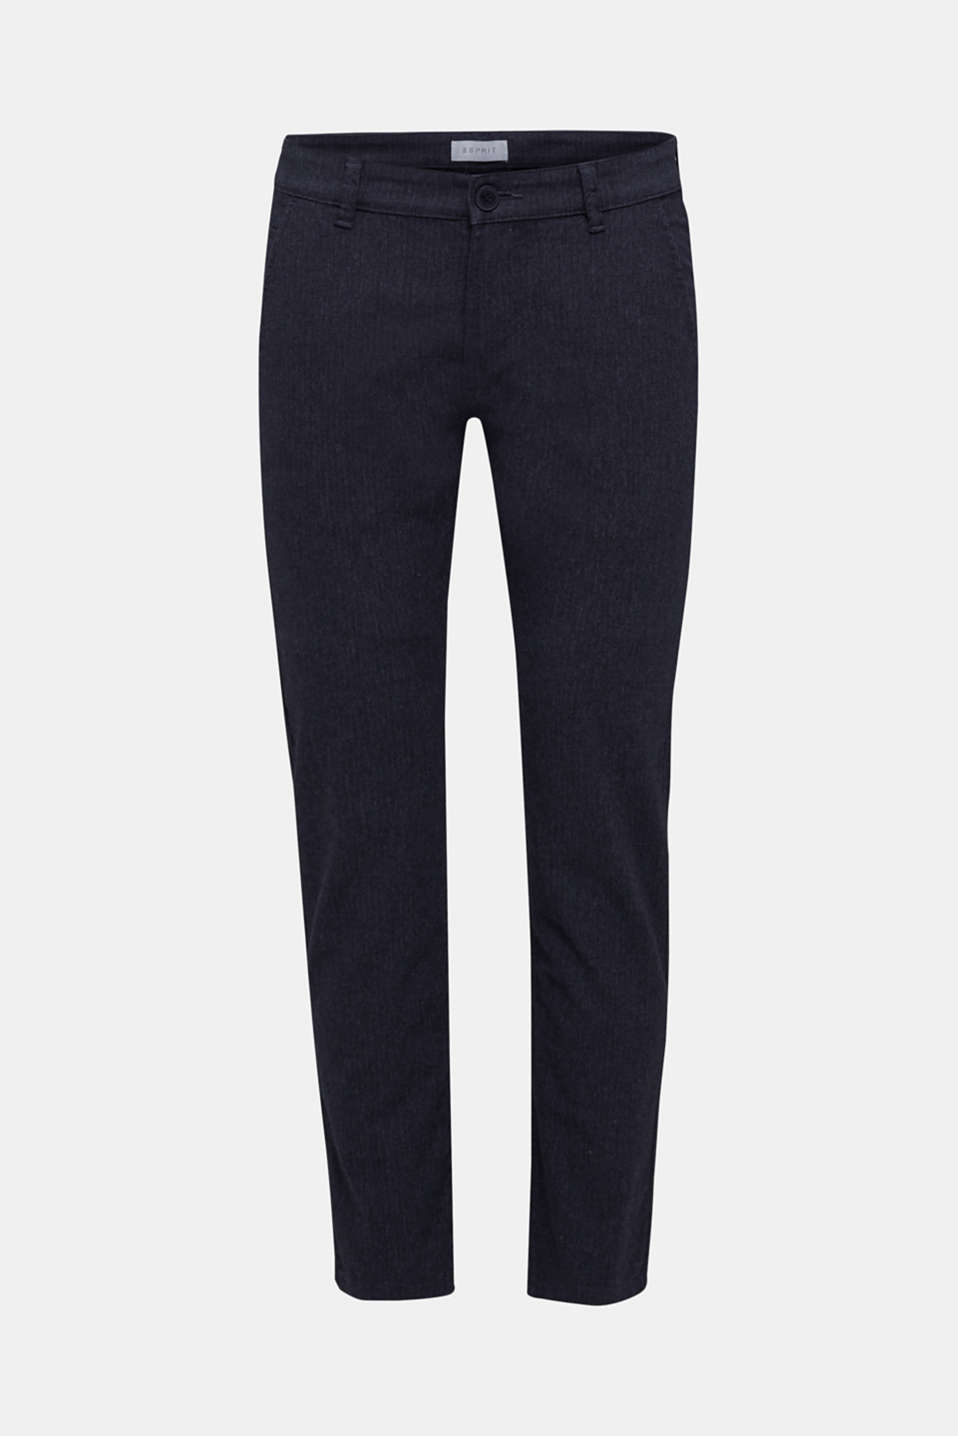 Pants woven Slim fit, NAVY, detail image number 6